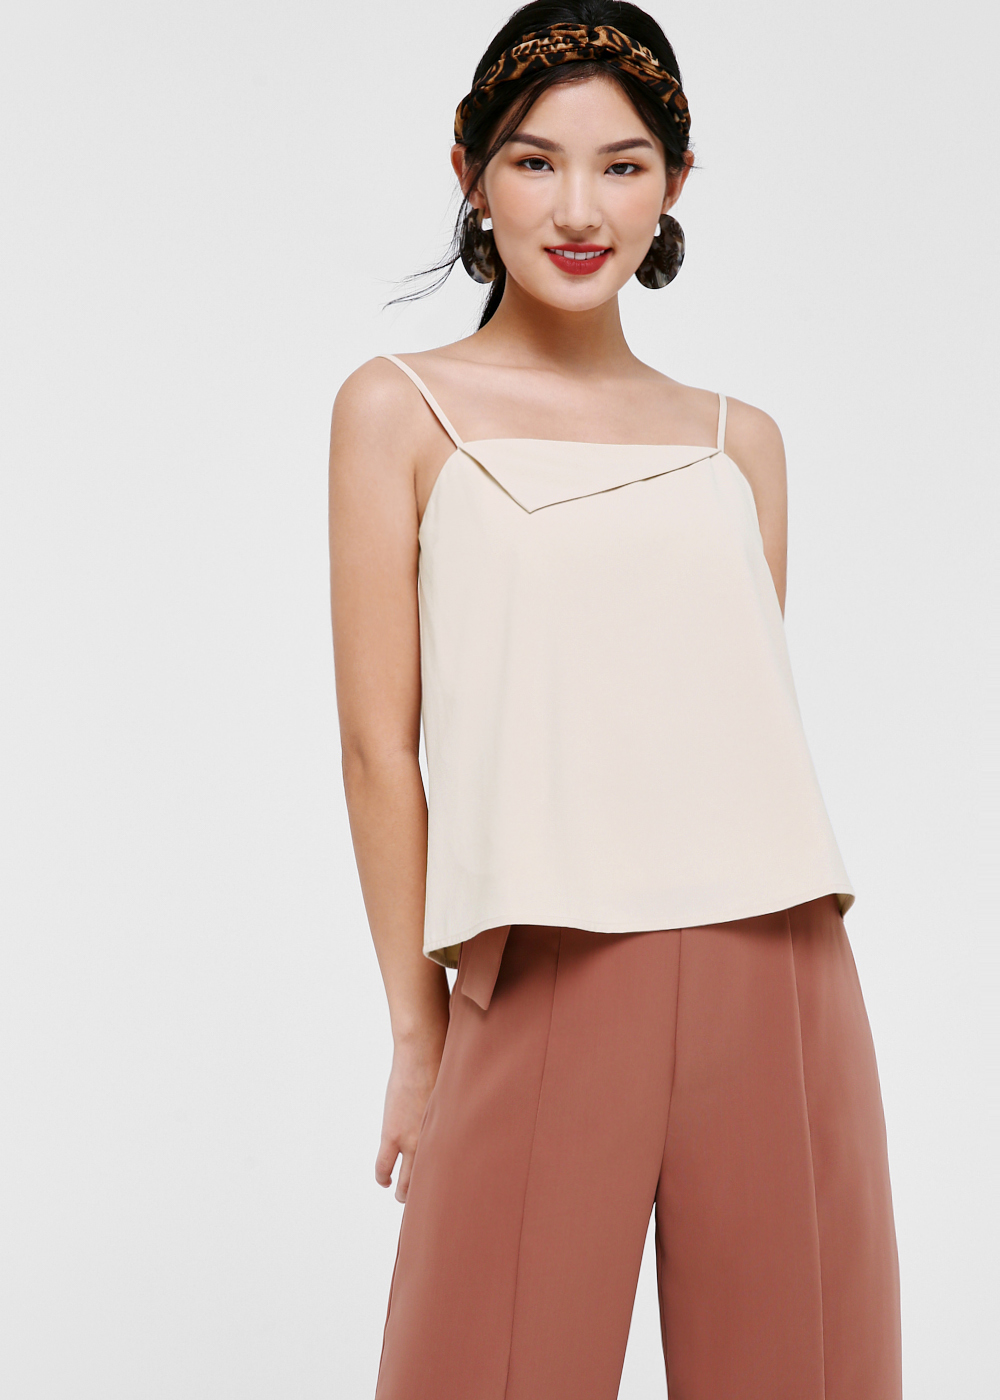 Frankie Foldover Camisole Top